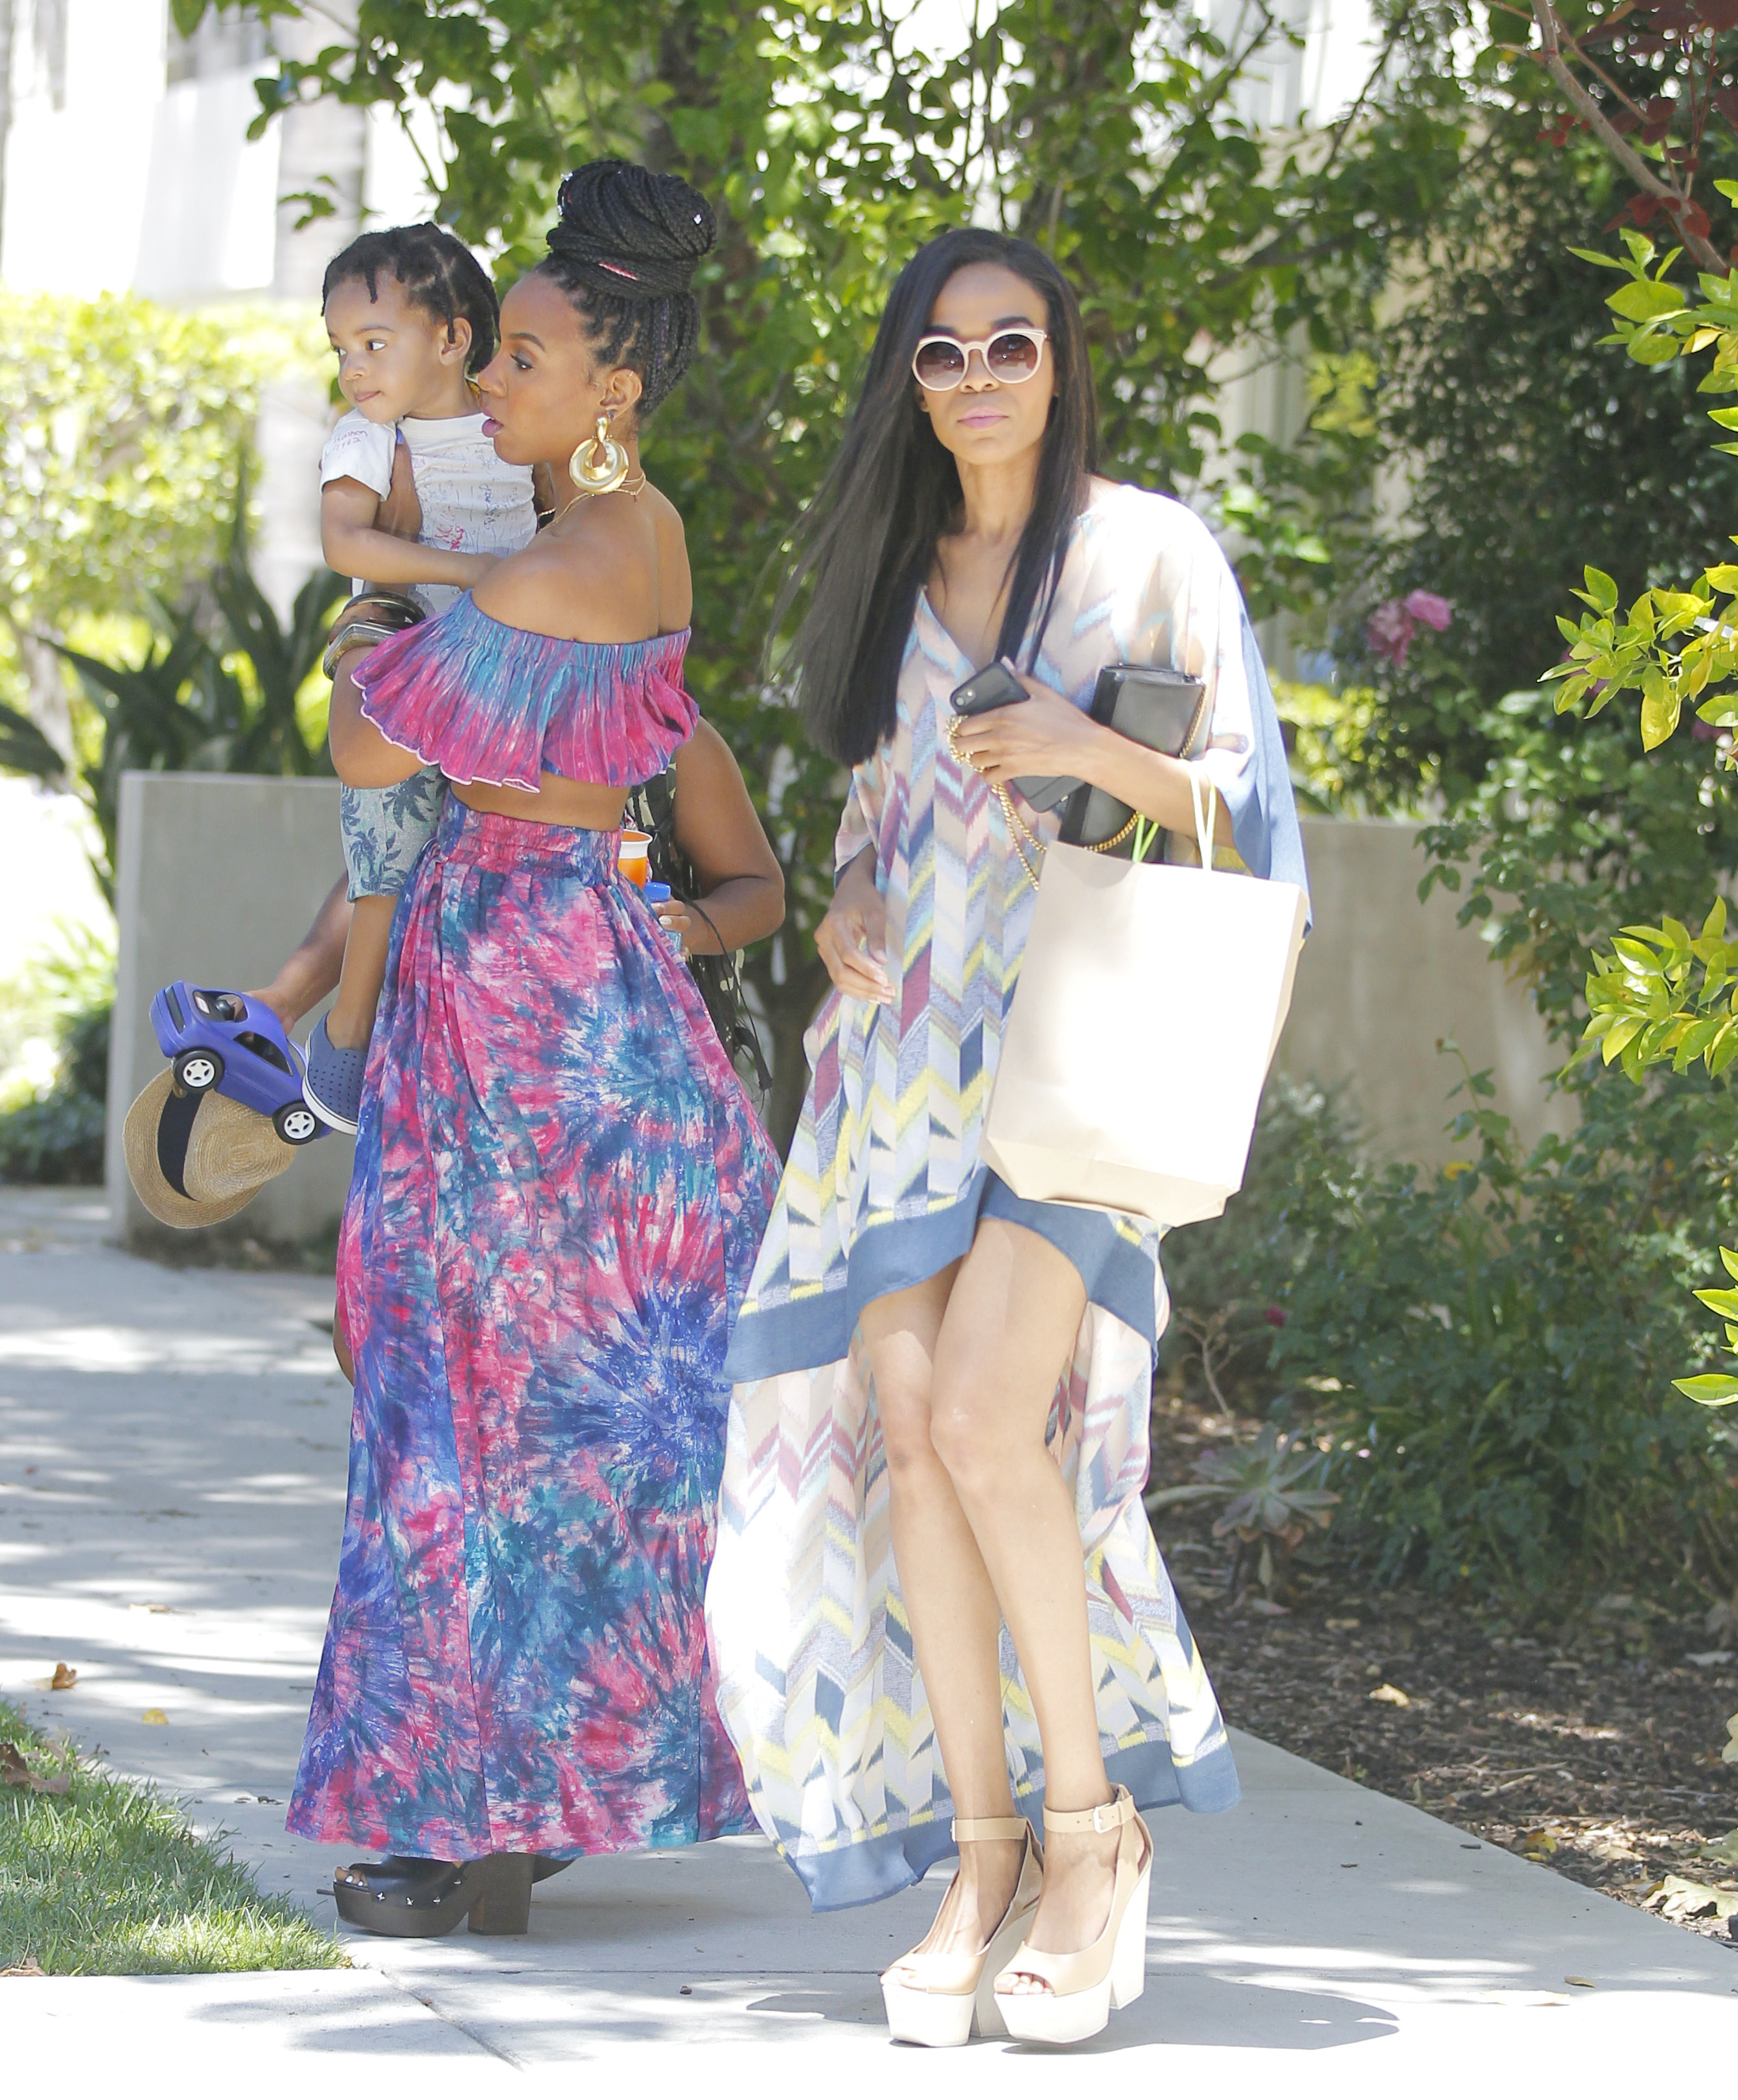 Kelly Rowland, son Titan Witherspoon and Michelle Williams leave Beyonce and Jay Z's baby shower in Los Angeles on May 20, 2017.